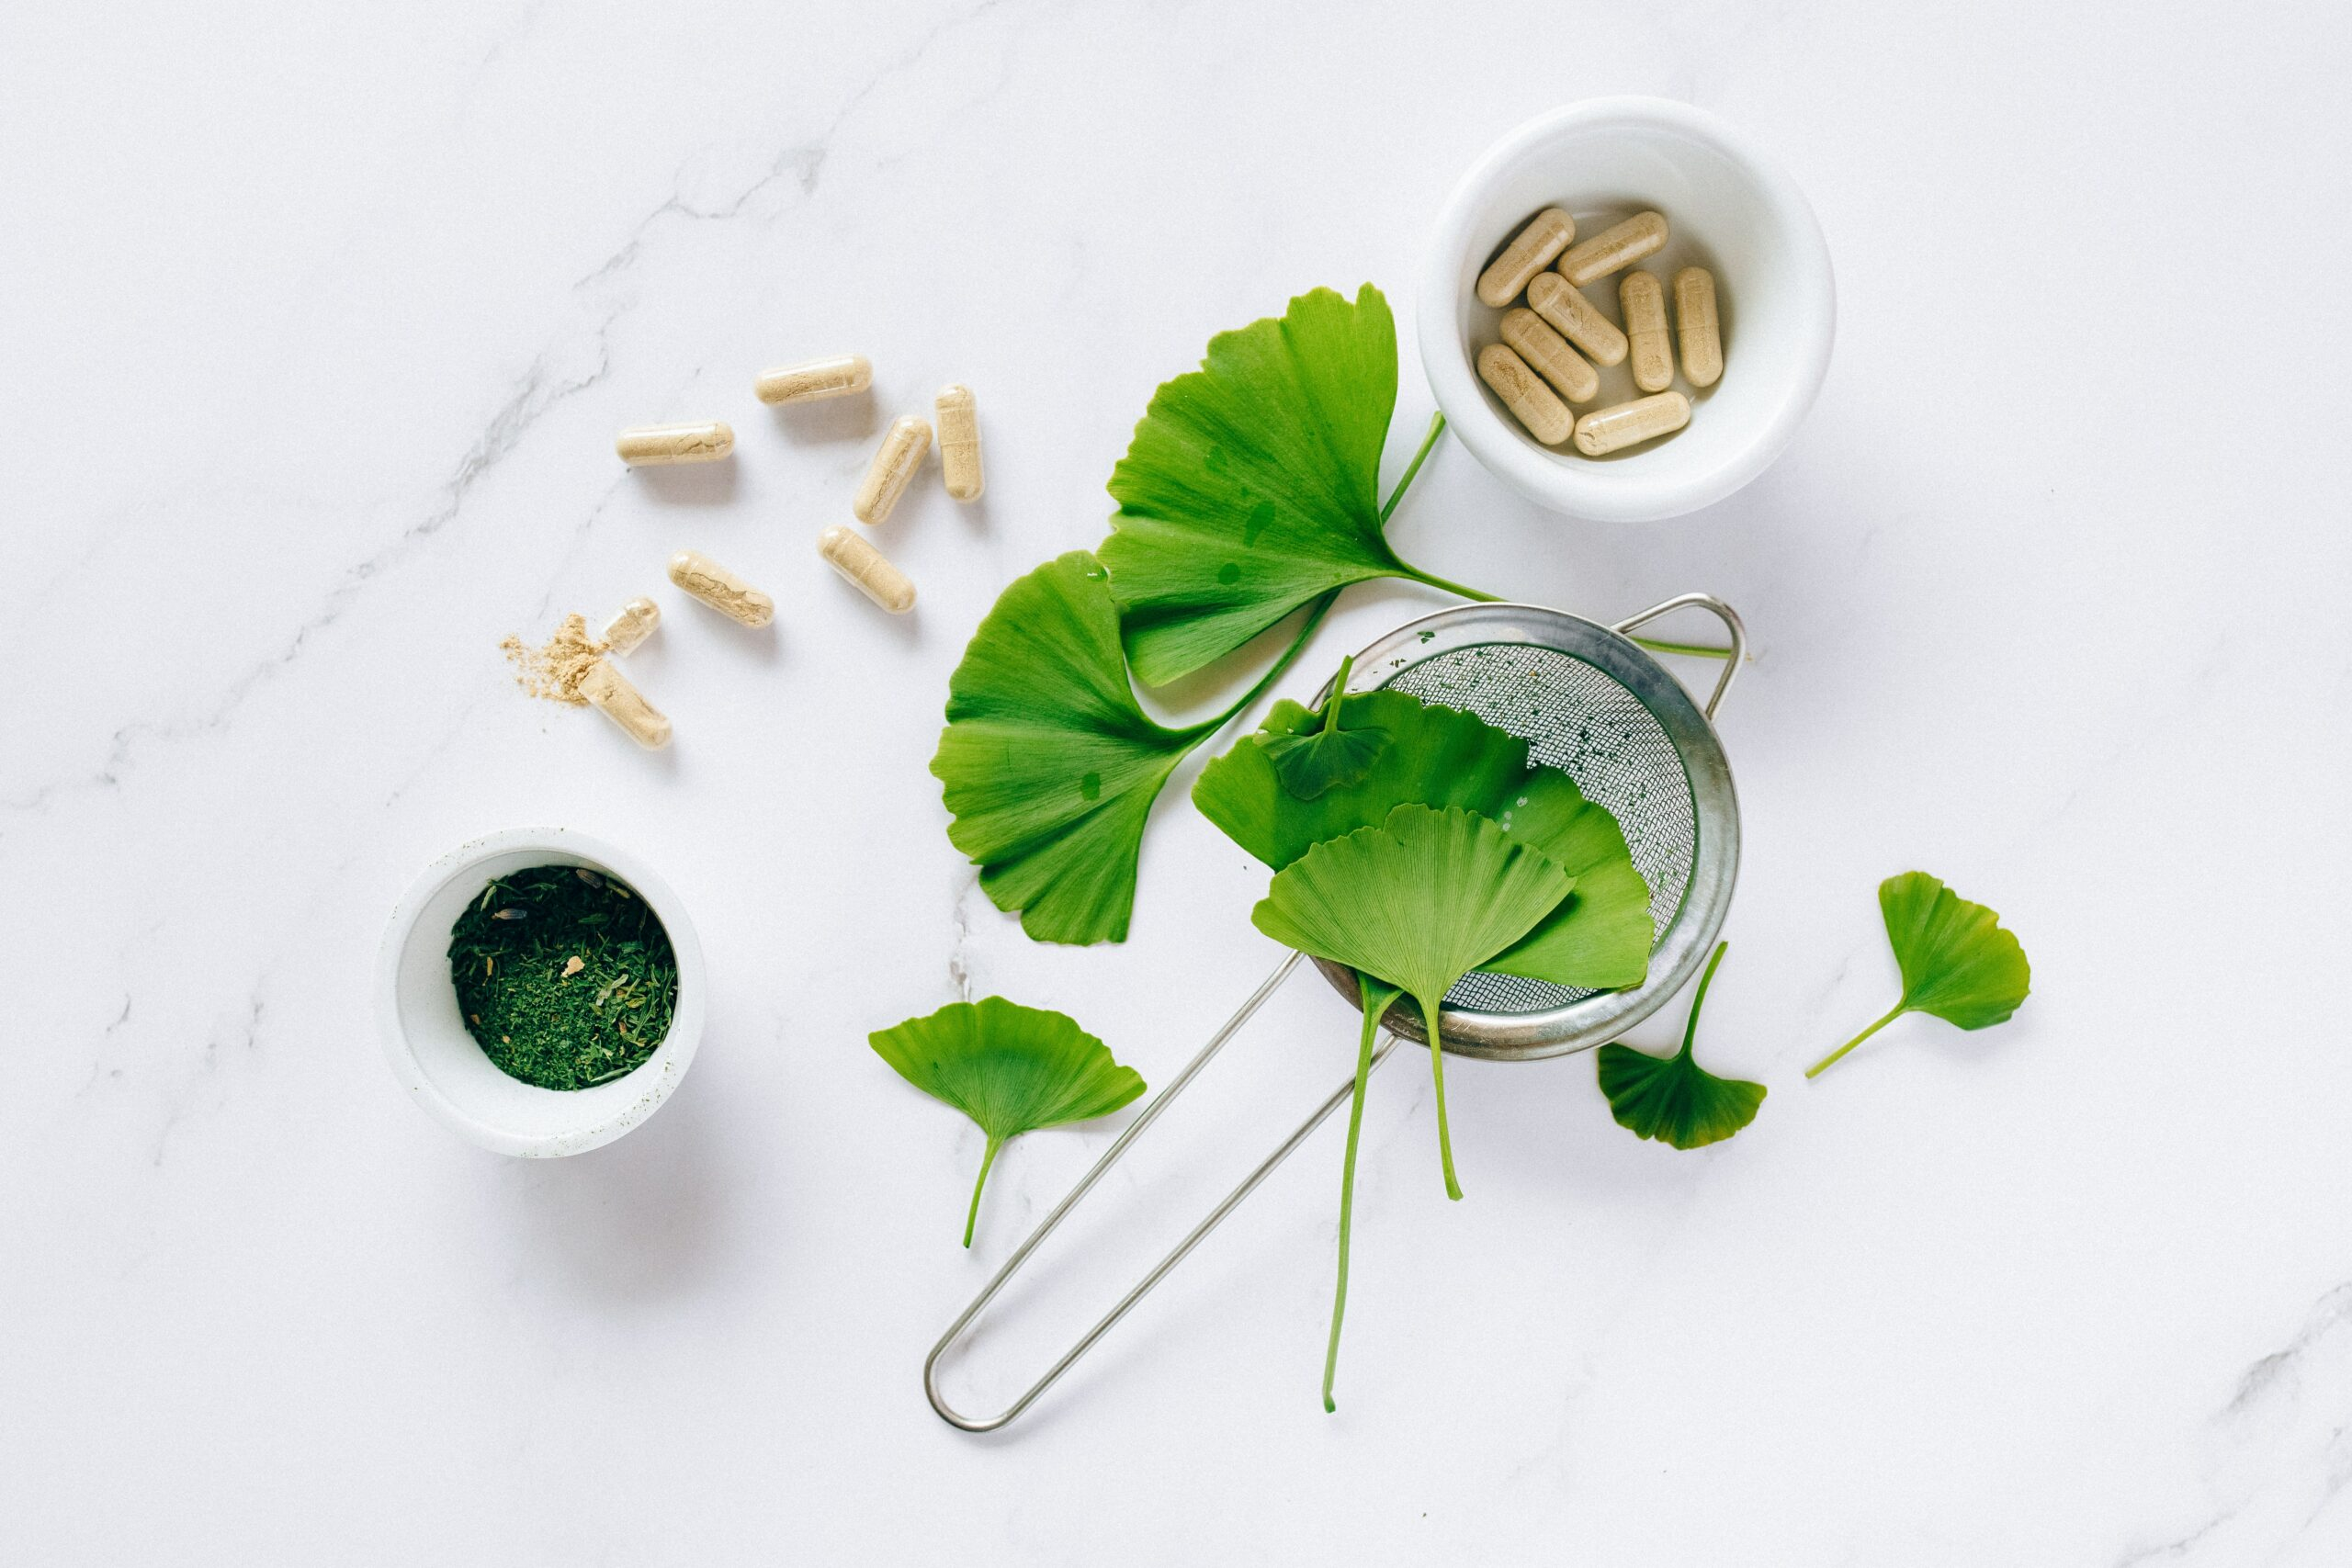 gingko biloba leaves capsules powder and tea arranged on a tabletop